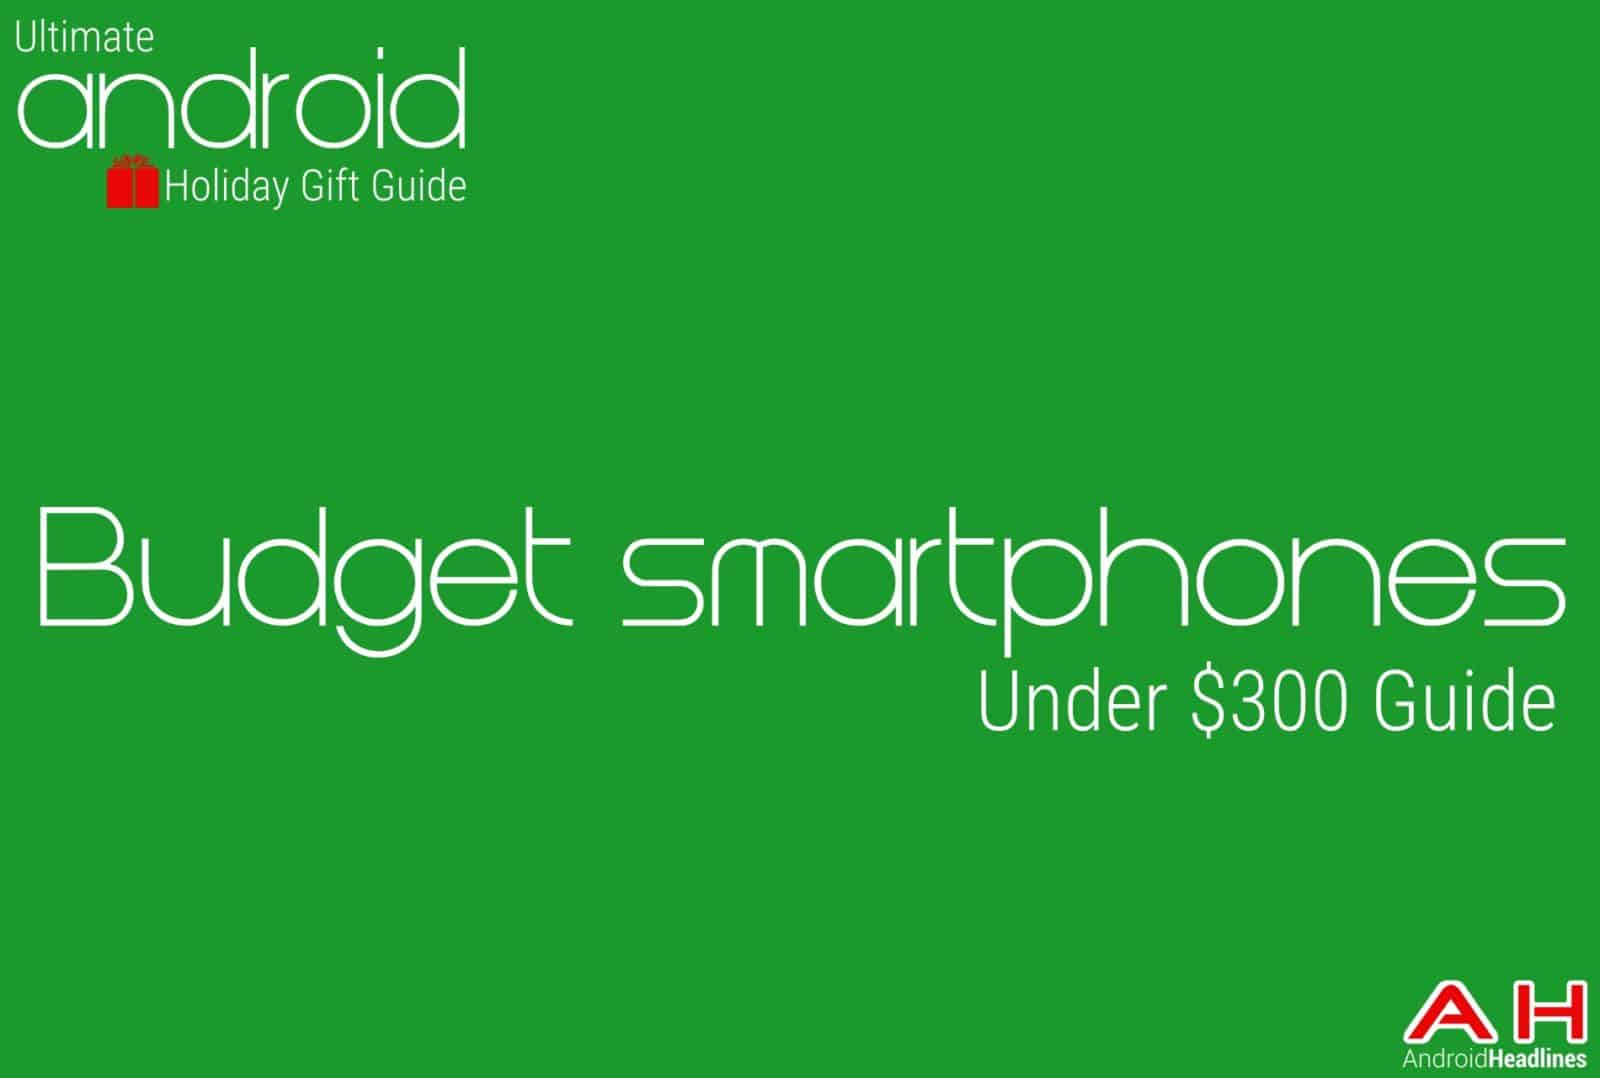 Best Budget Smartphones - Ultimate Android Holiday Gift Guide Main